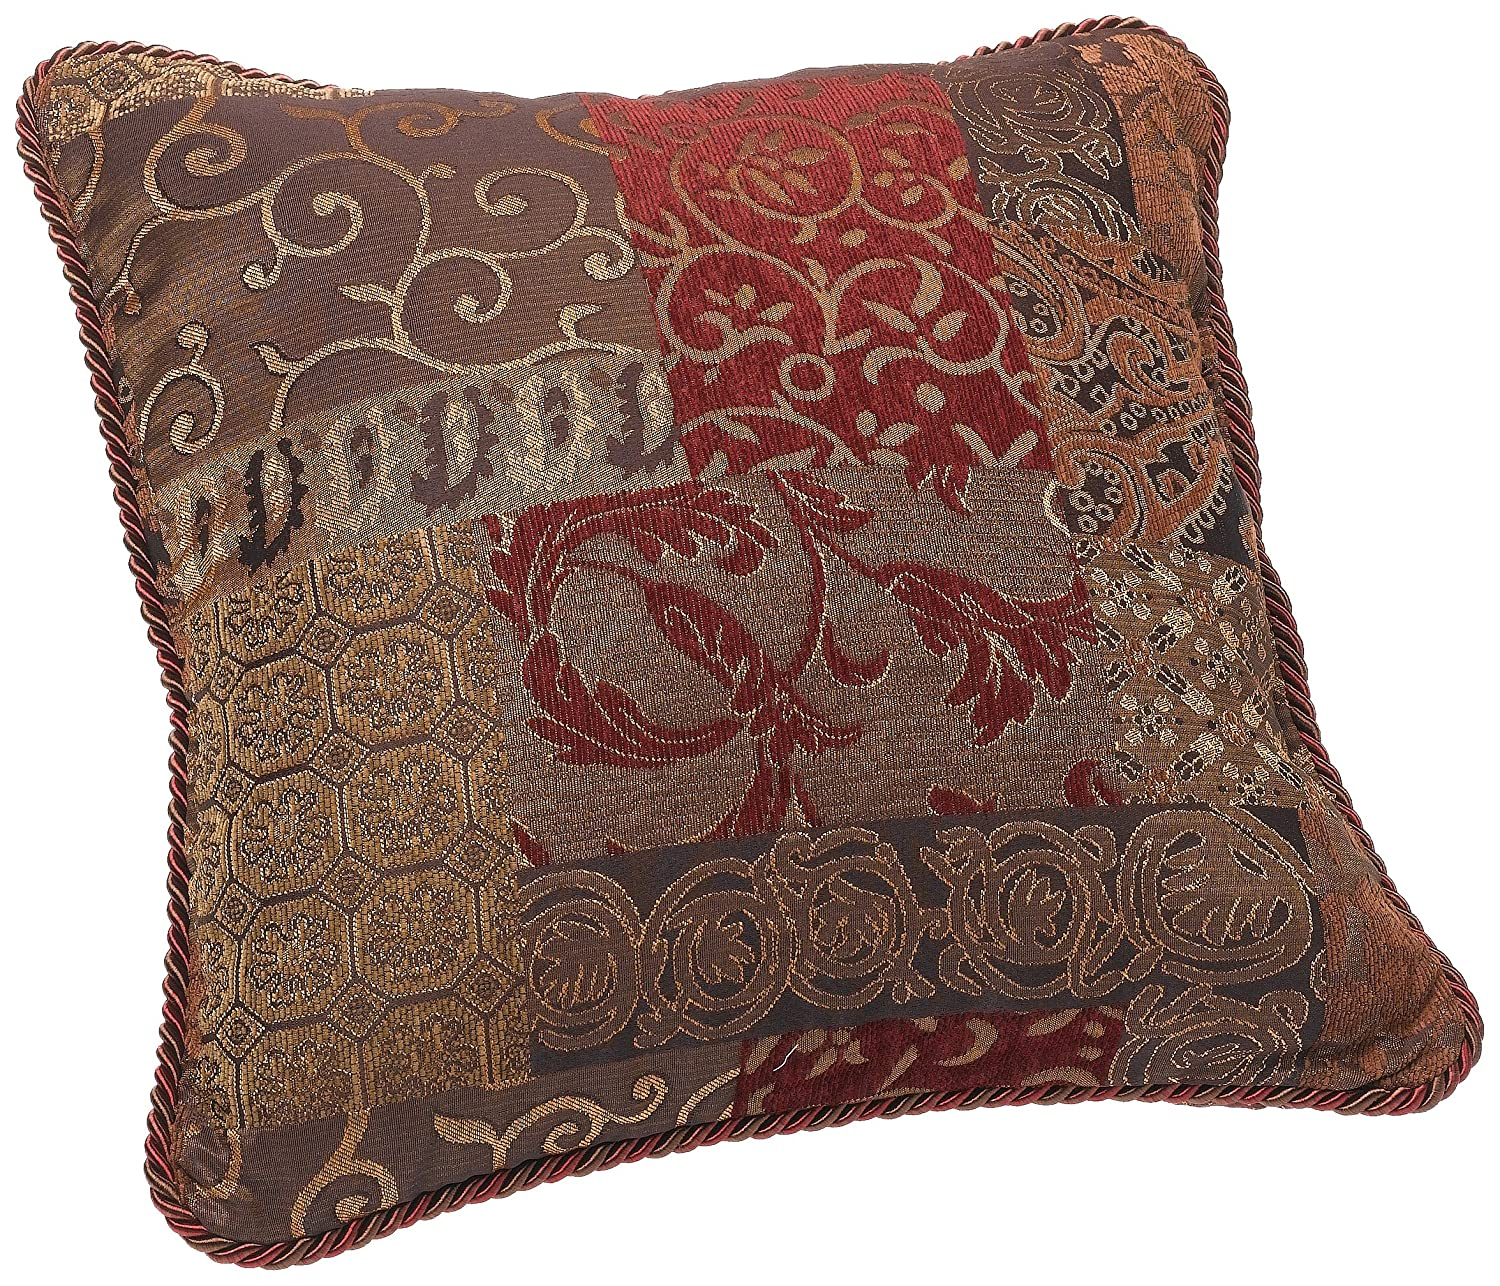 Croscill Galleria Square Pillow, 18-inch by 18-inch, Red 2A0-590O0-6405/610